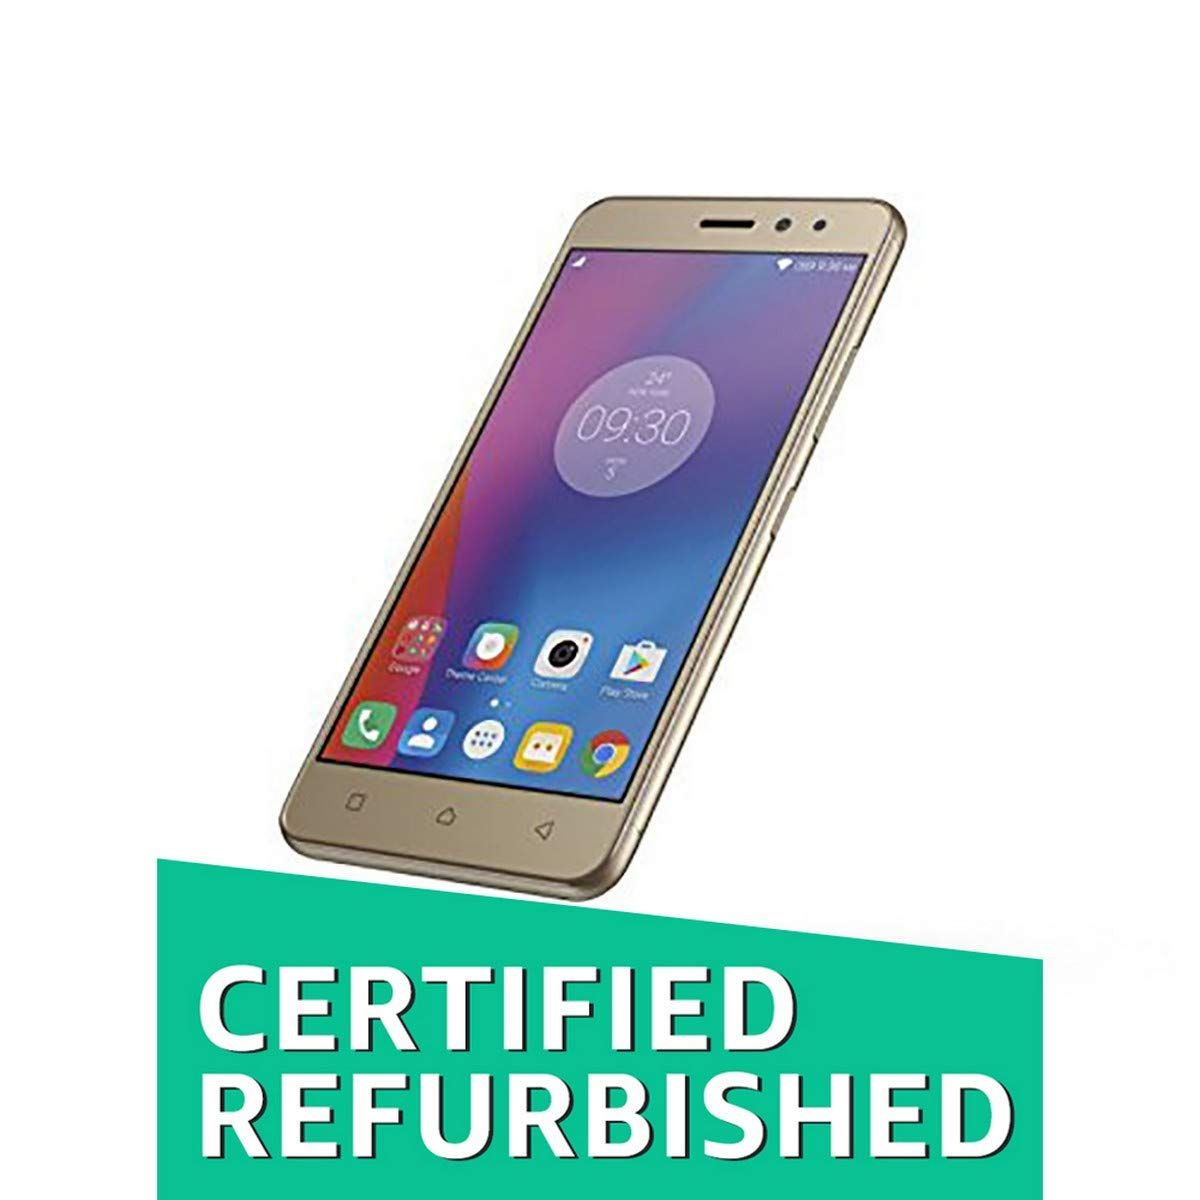 Certified Refurbished Lenovo K6 Power Gold 32gb Vibe X2 4glte Electronics